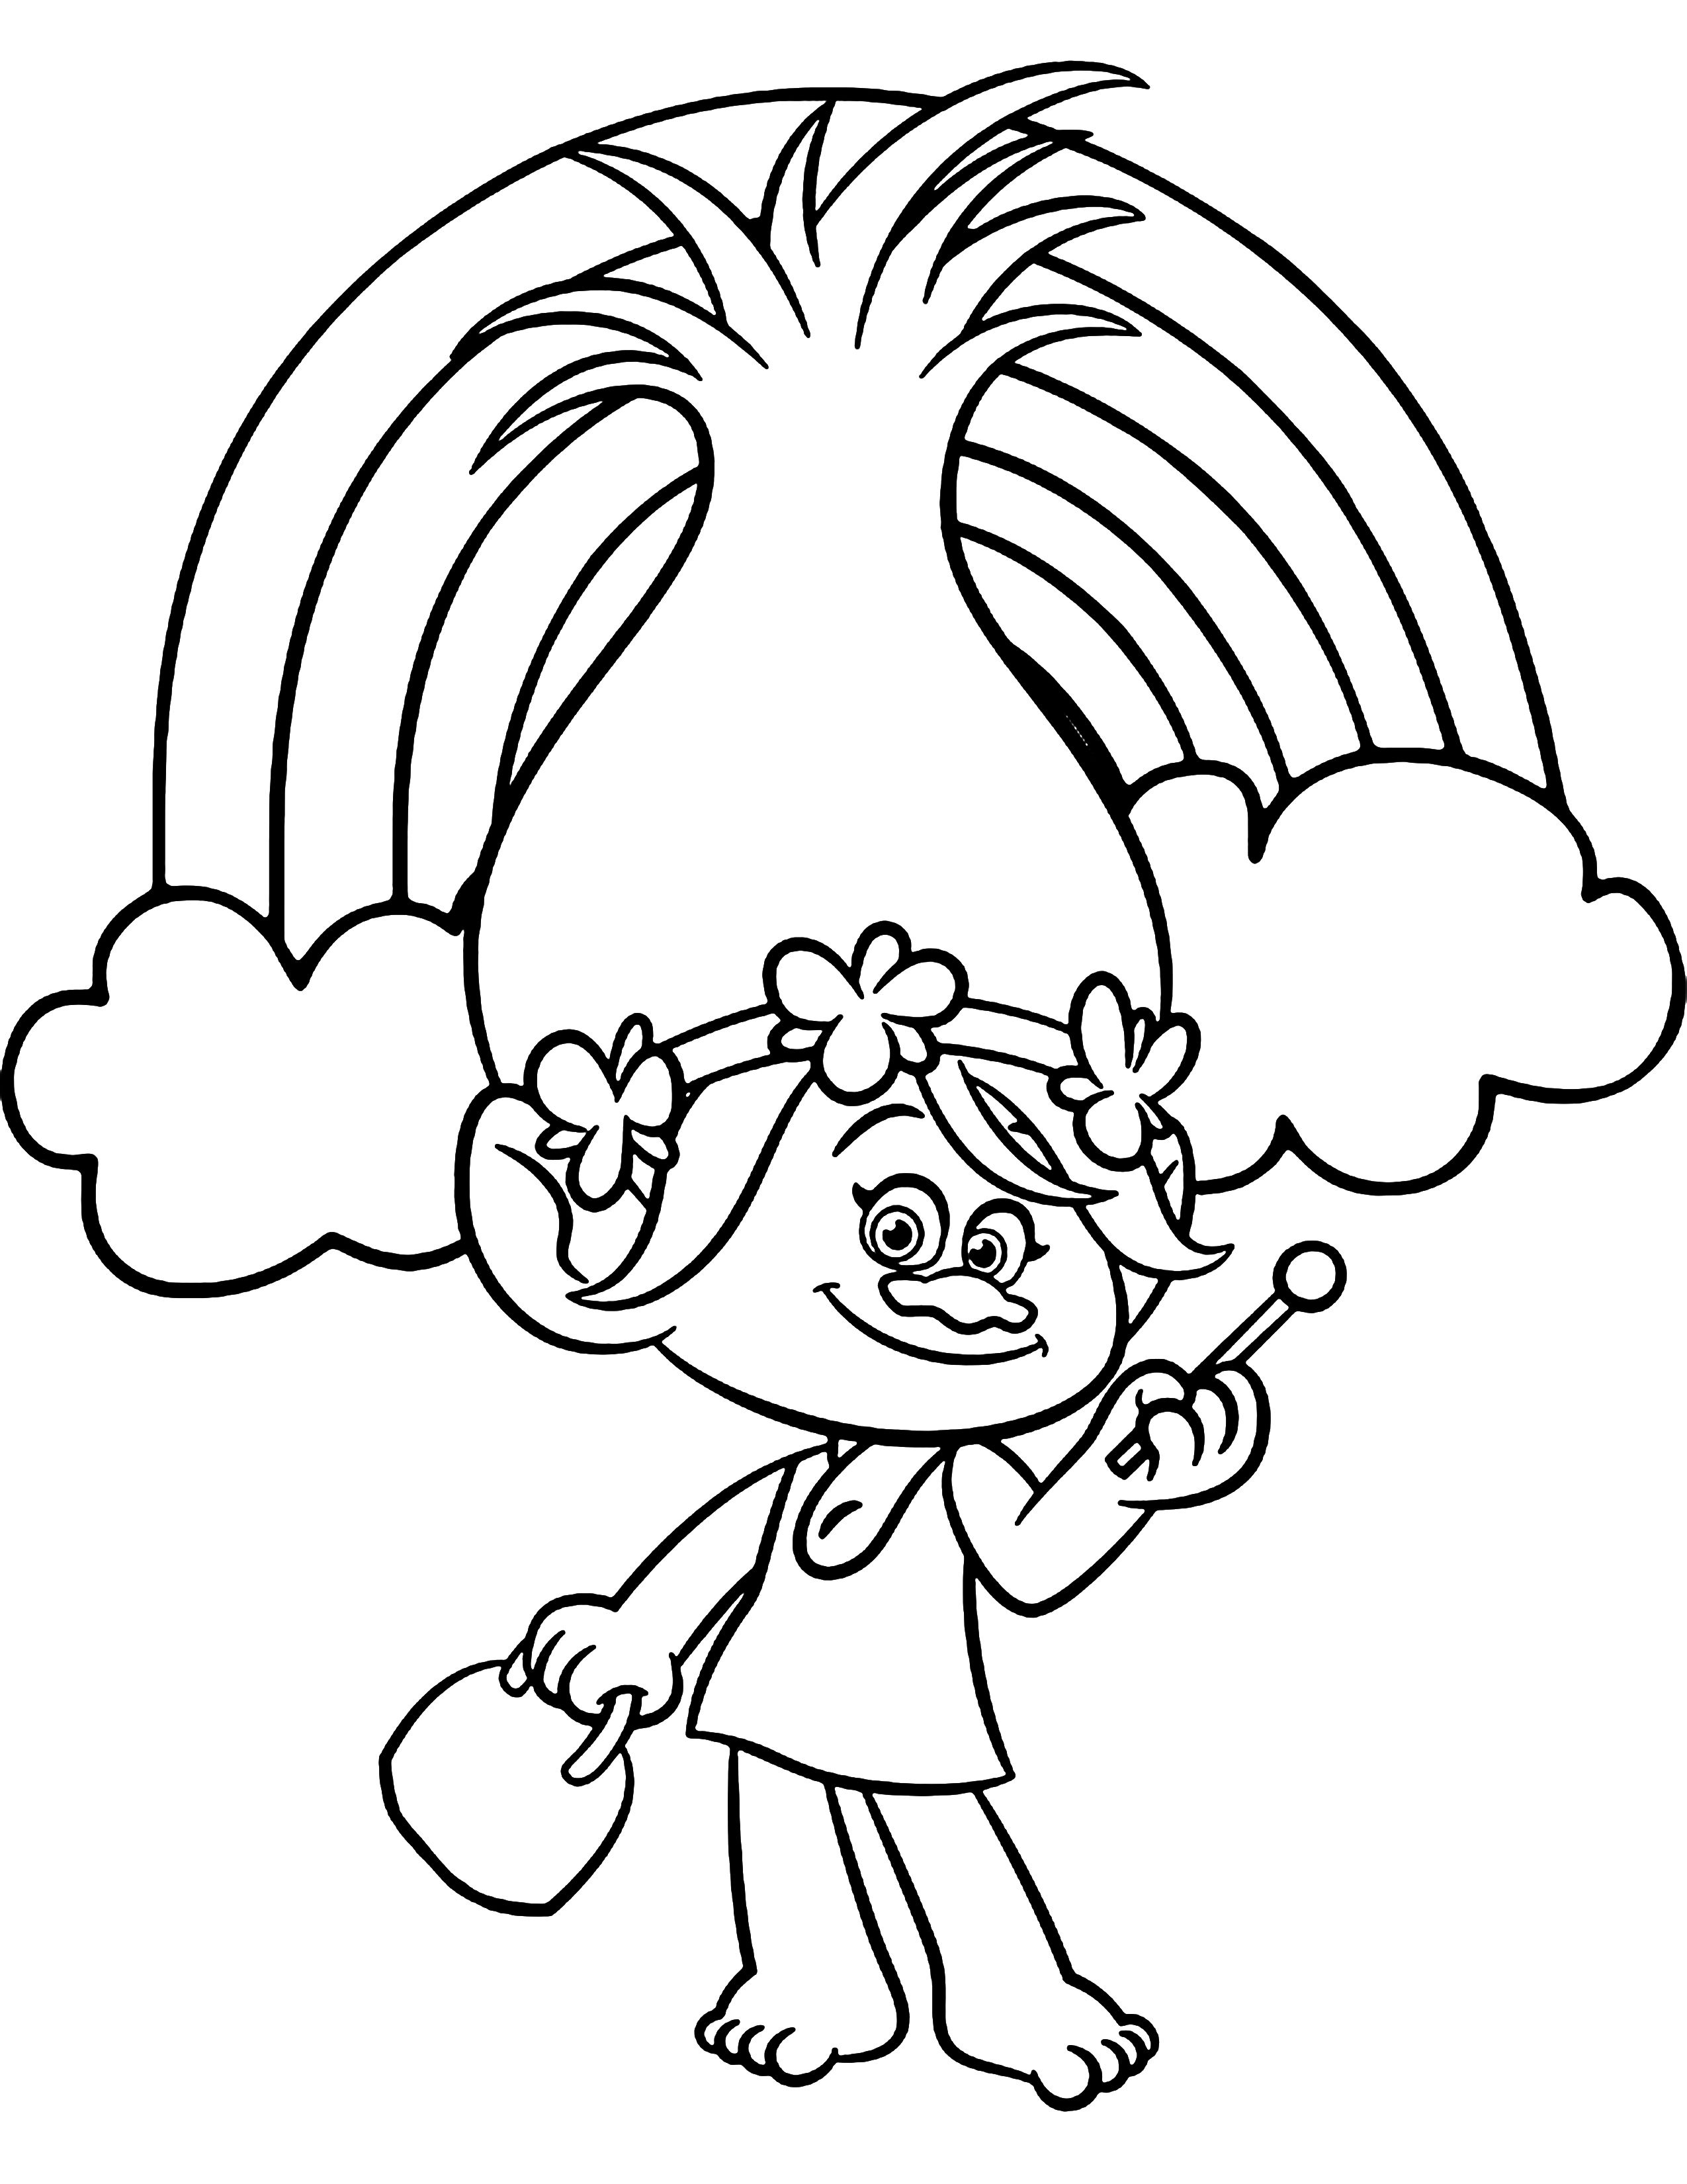 40 Trolls Coloring Pages For Kids Poppy Coloring Page Disney Coloring Pages Printables Disney Coloring Pages